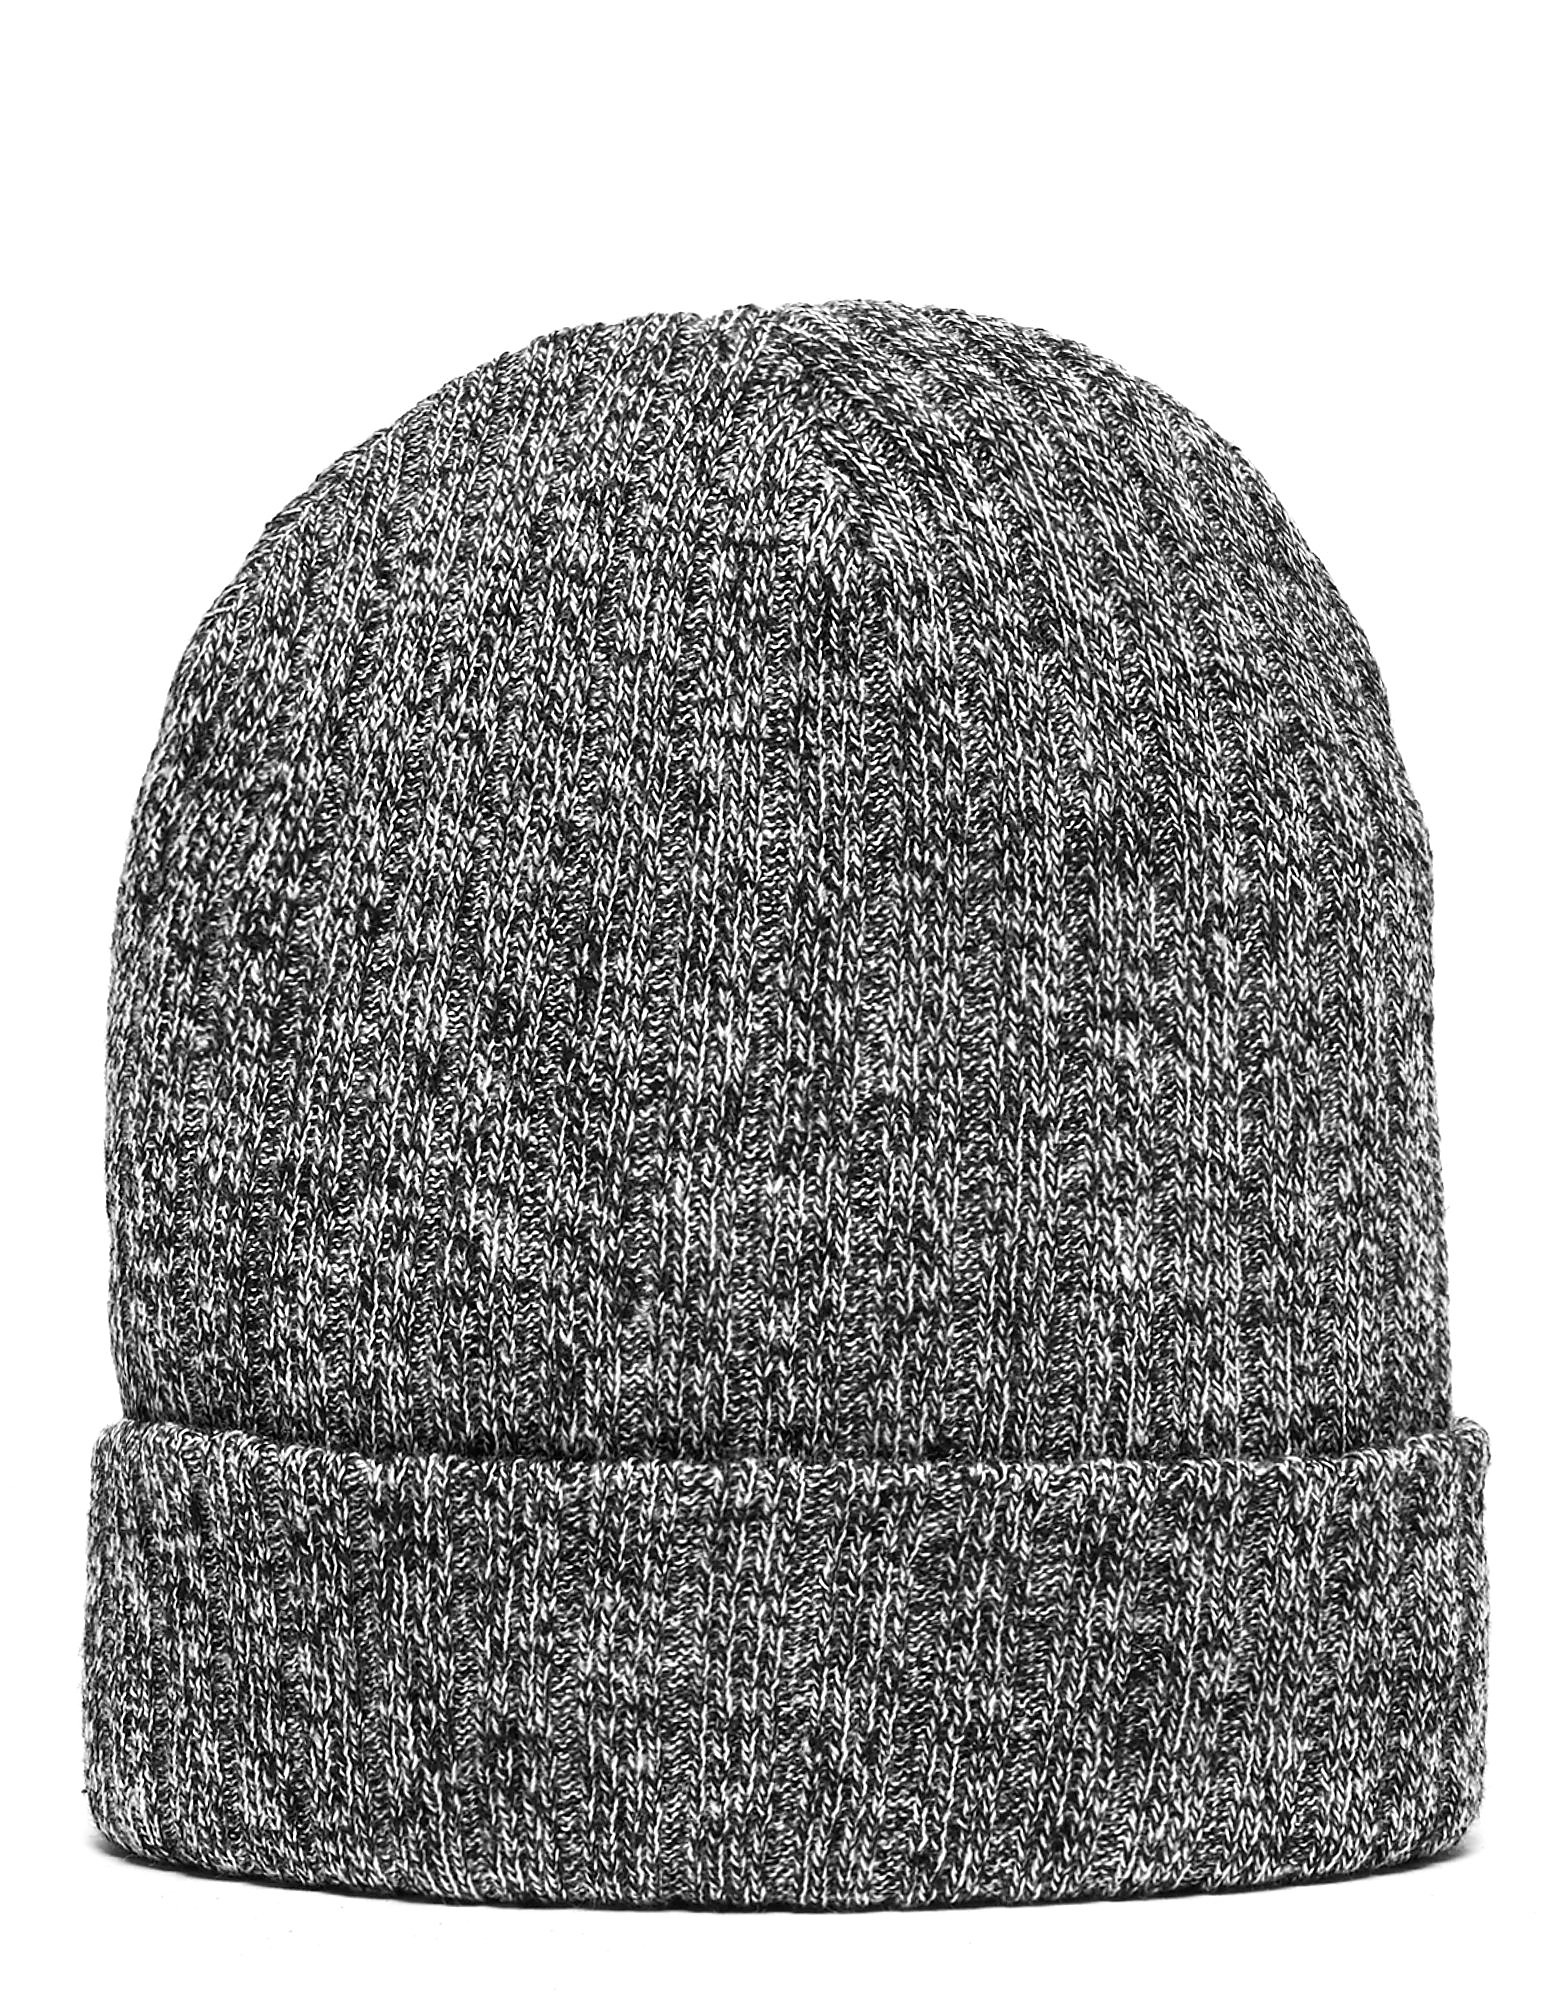 Gym King Beanie Hat